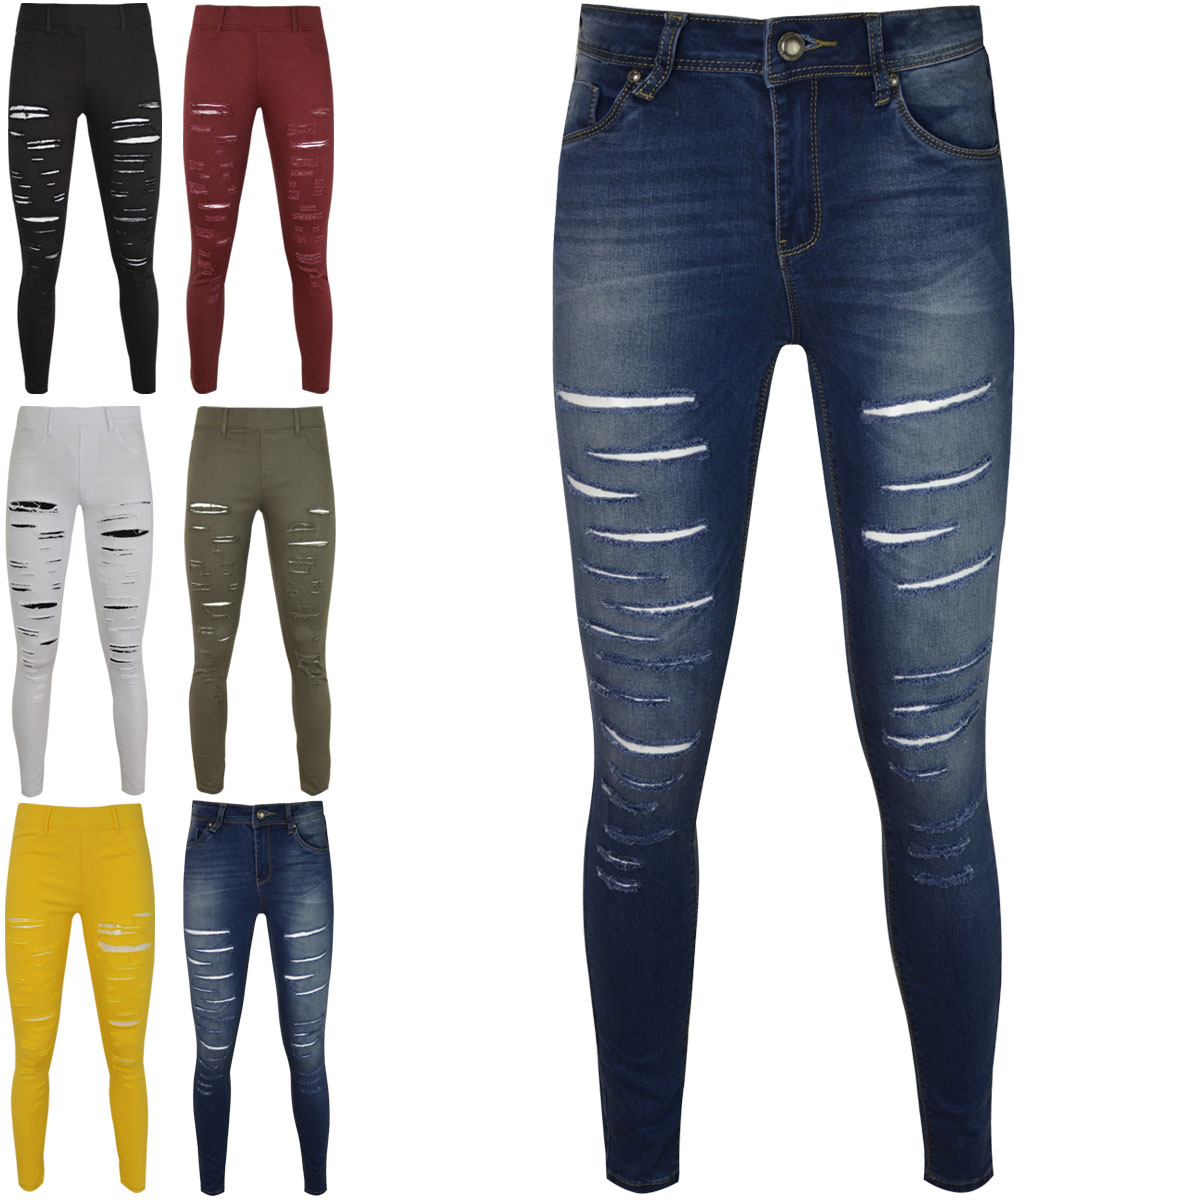 WOMENS LADIES SKINNY FIT RIPPED JEANS JEGGINGS STRETCH SLIM DENIM ... 49242d3bf4